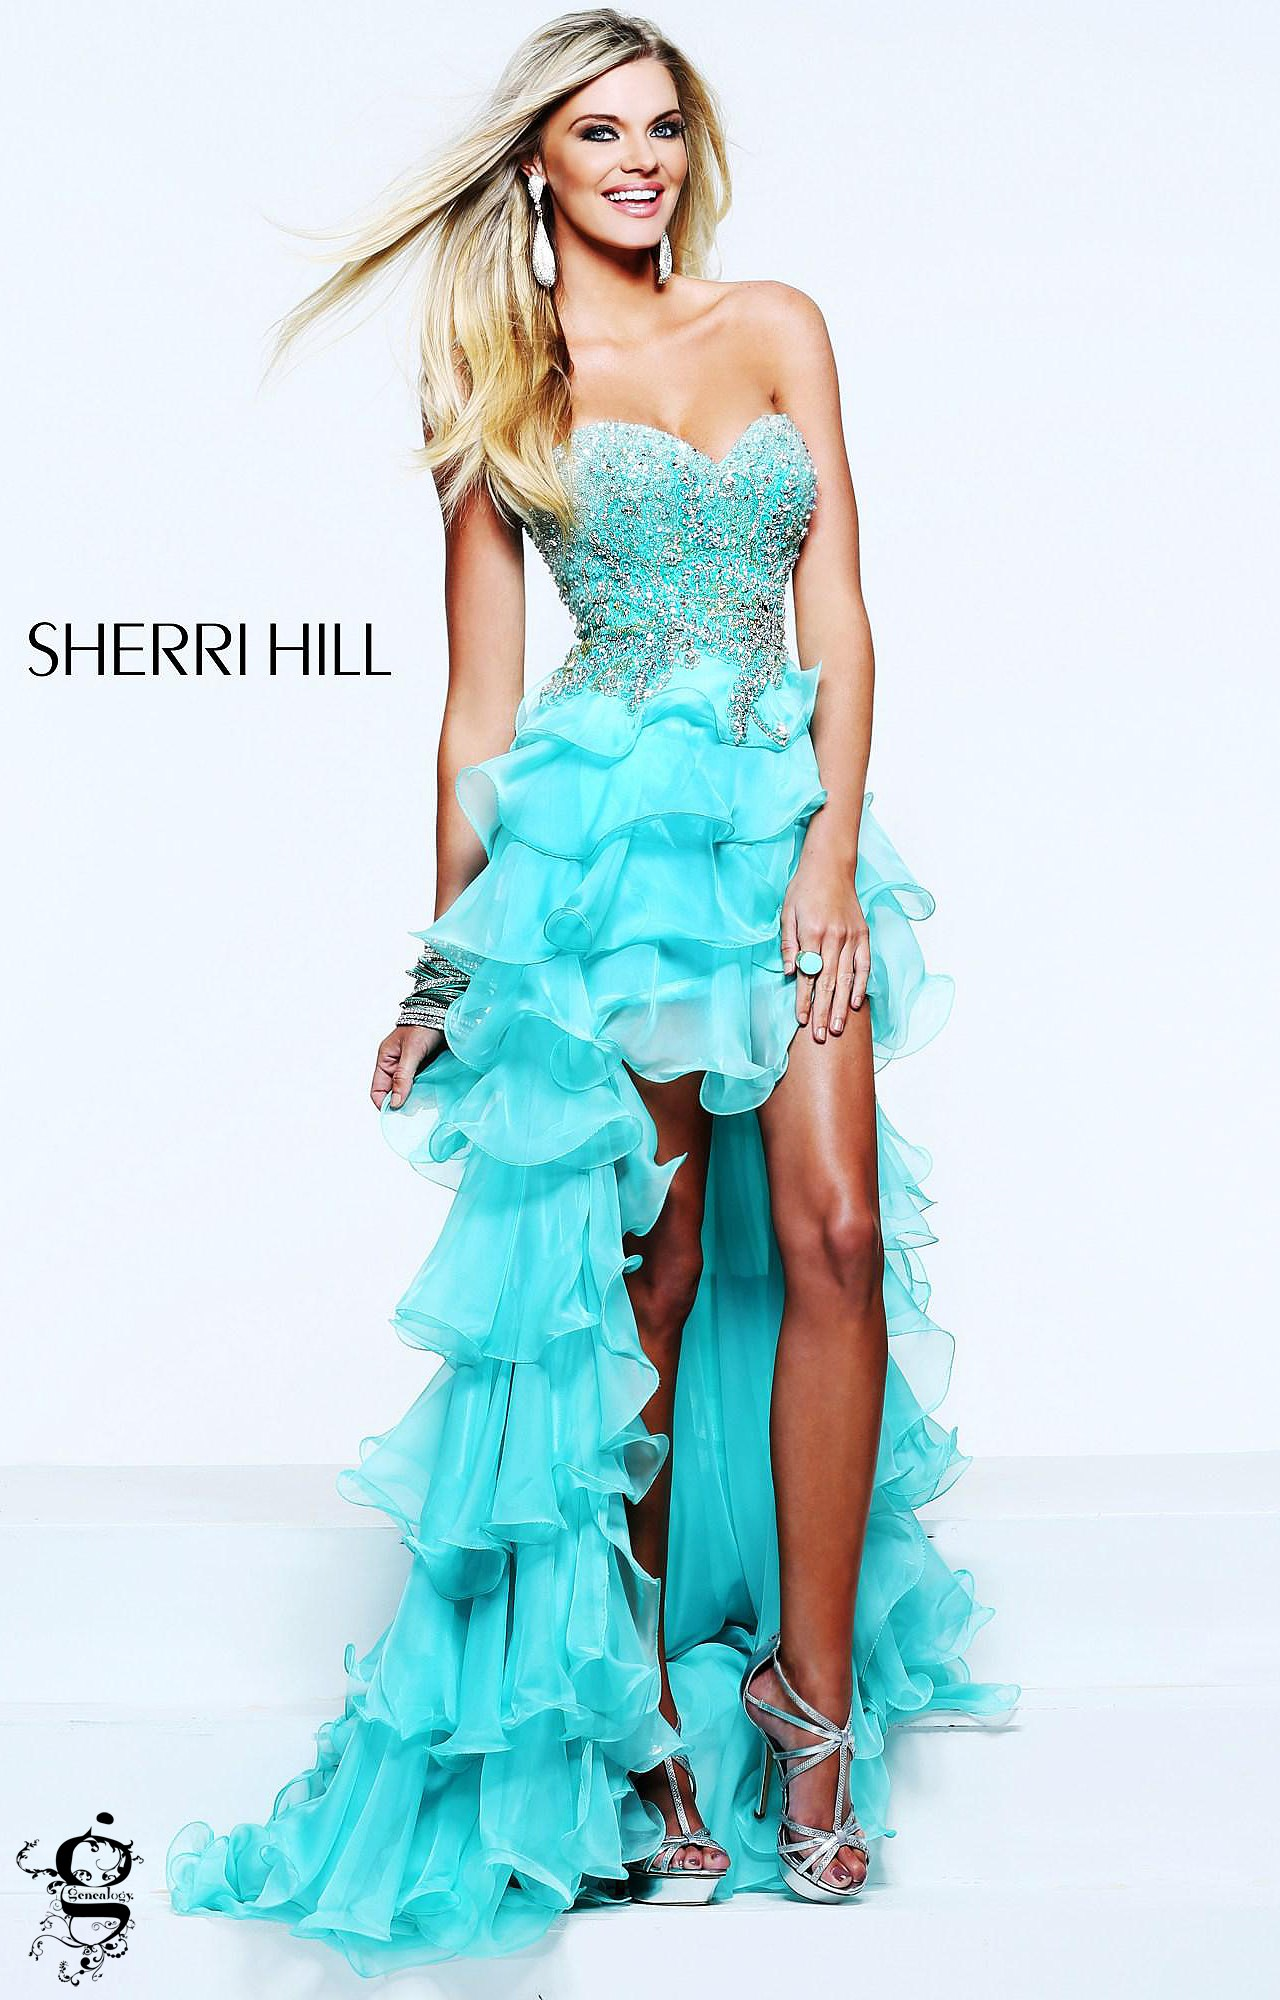 Sherri Hill 3875 - The Twist and Shout Gown Prom Dress